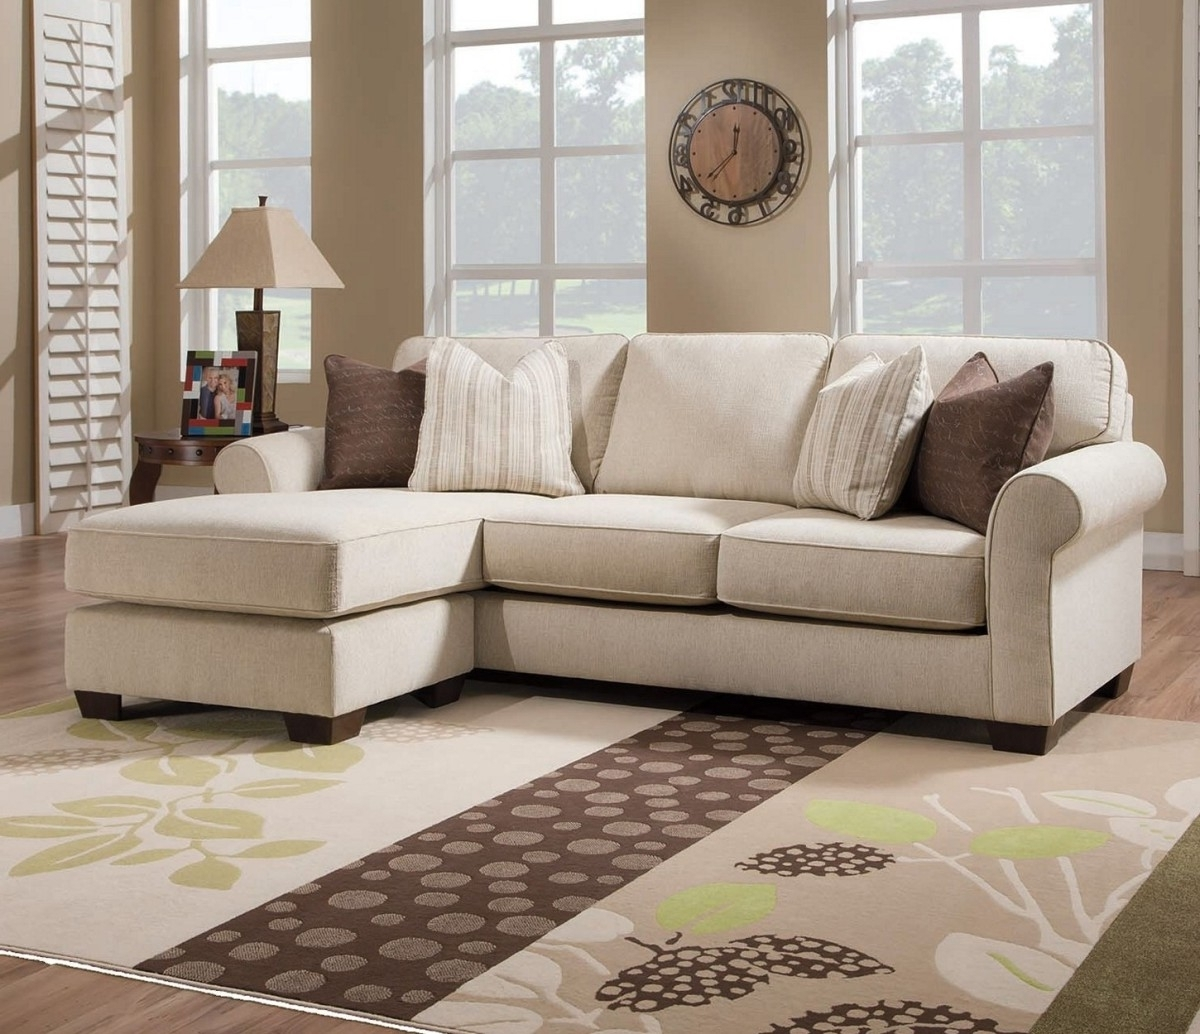 Most Current Sofa : High Back Sofa Inexpensive Sectional Sofas For Small Spaces Within Narrow Spaces Sectional Sofas (View 10 of 20)